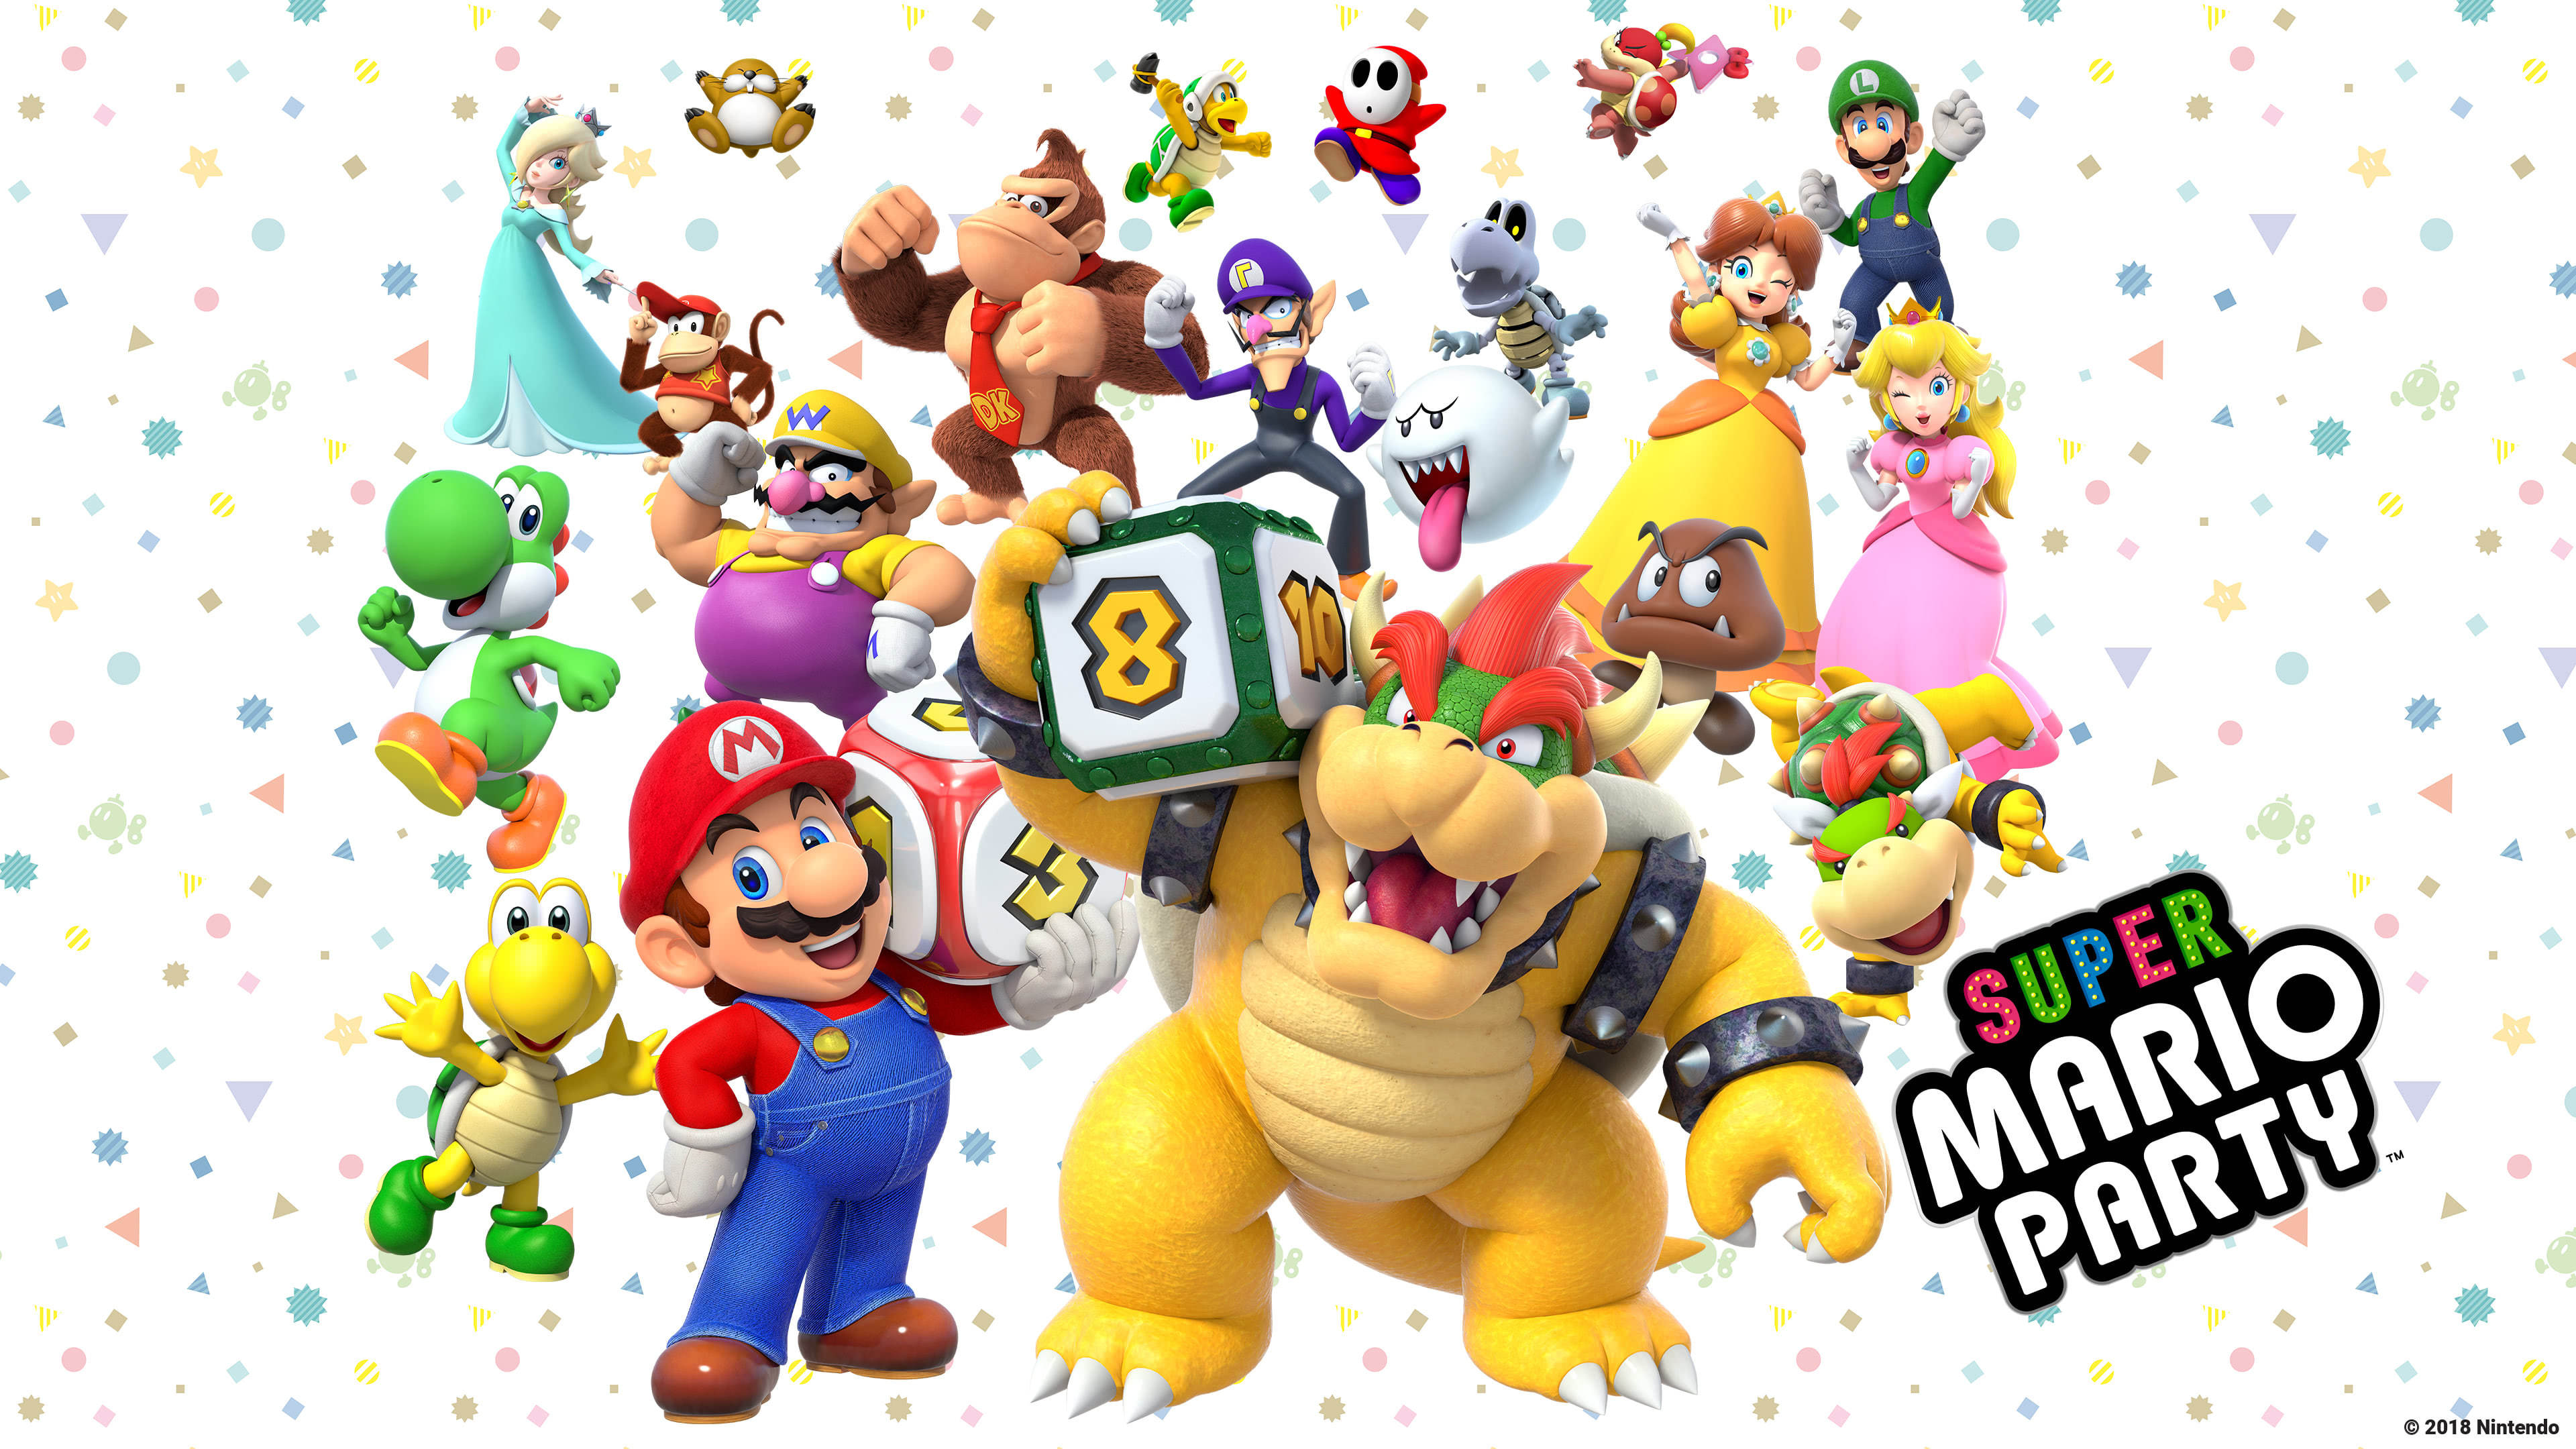 Super Mario Party Characters UHD 4K Wallpaper | Pixelz